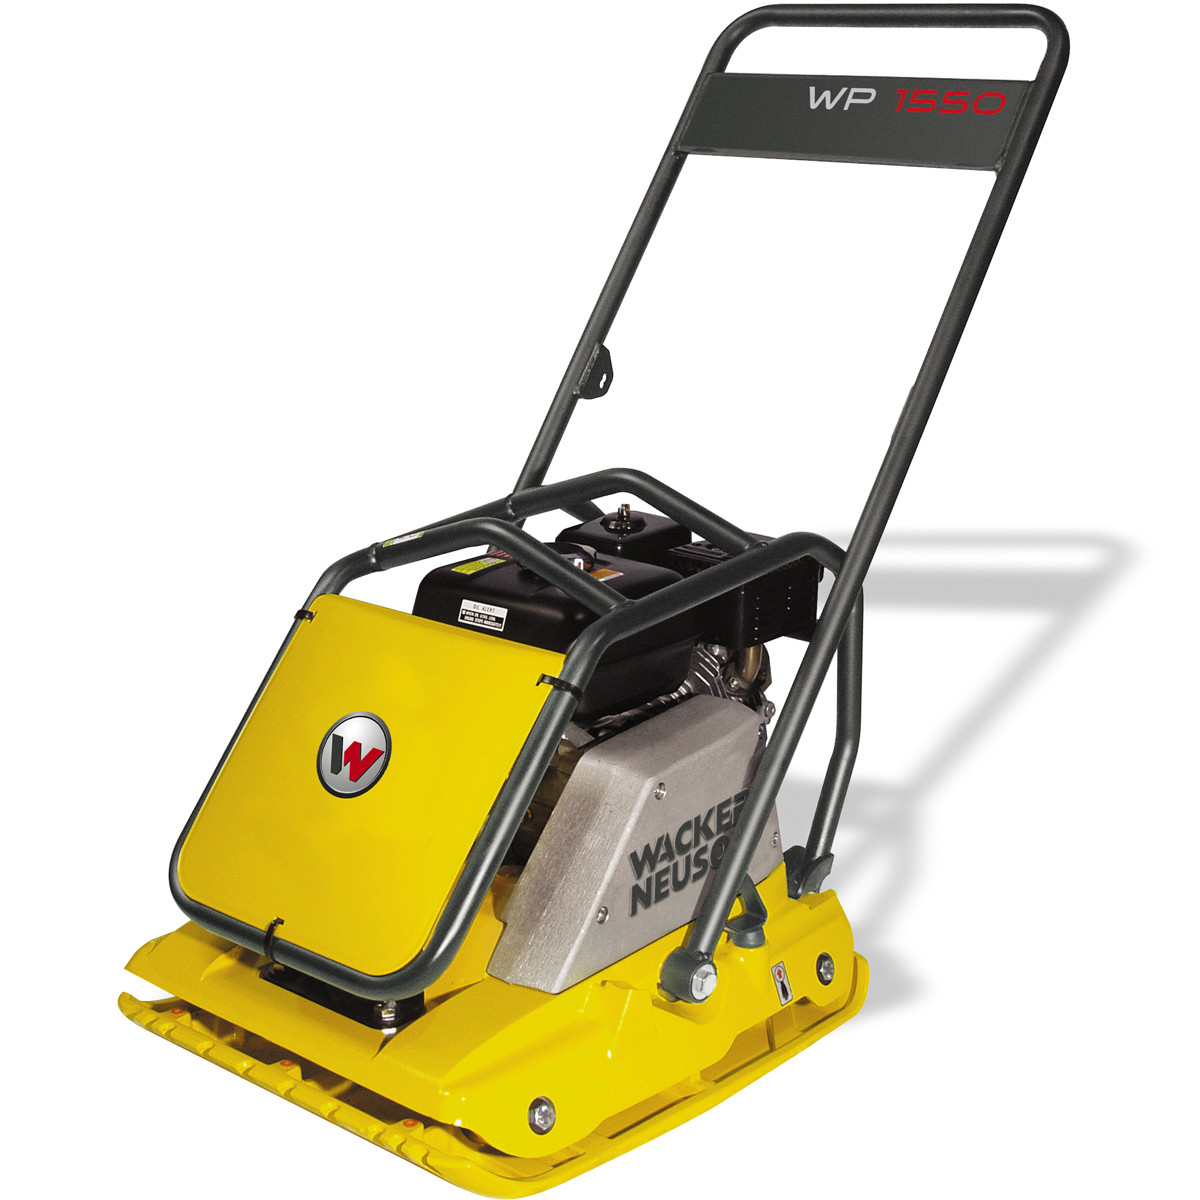 Wacker WP1550AW Vibration Plate